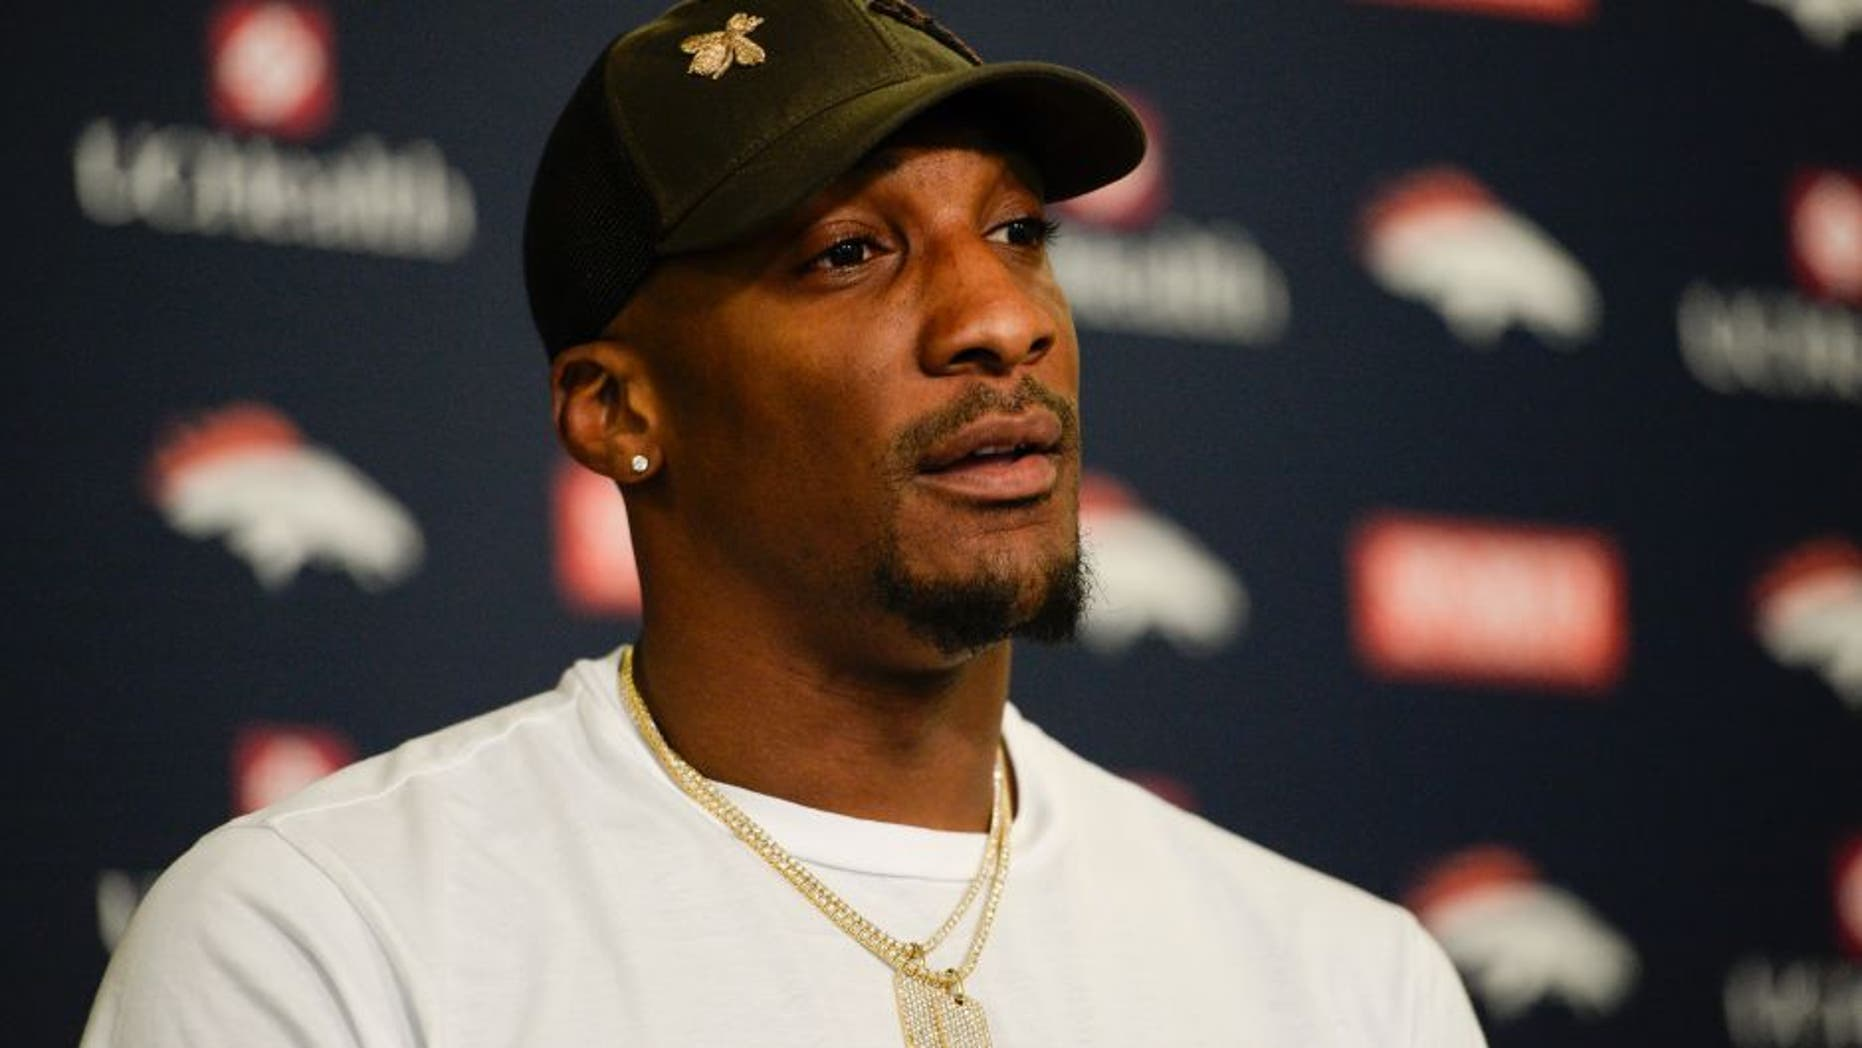 ENGLEWOOD, CO - APRIL 18: Denver Broncos Aqib Talib addresses the media during a press conference April 18, 2016 at UCHealth Training Facility as the attend the offseason workout program. (Photo By John Leyba/The Denver Post via Getty Images)